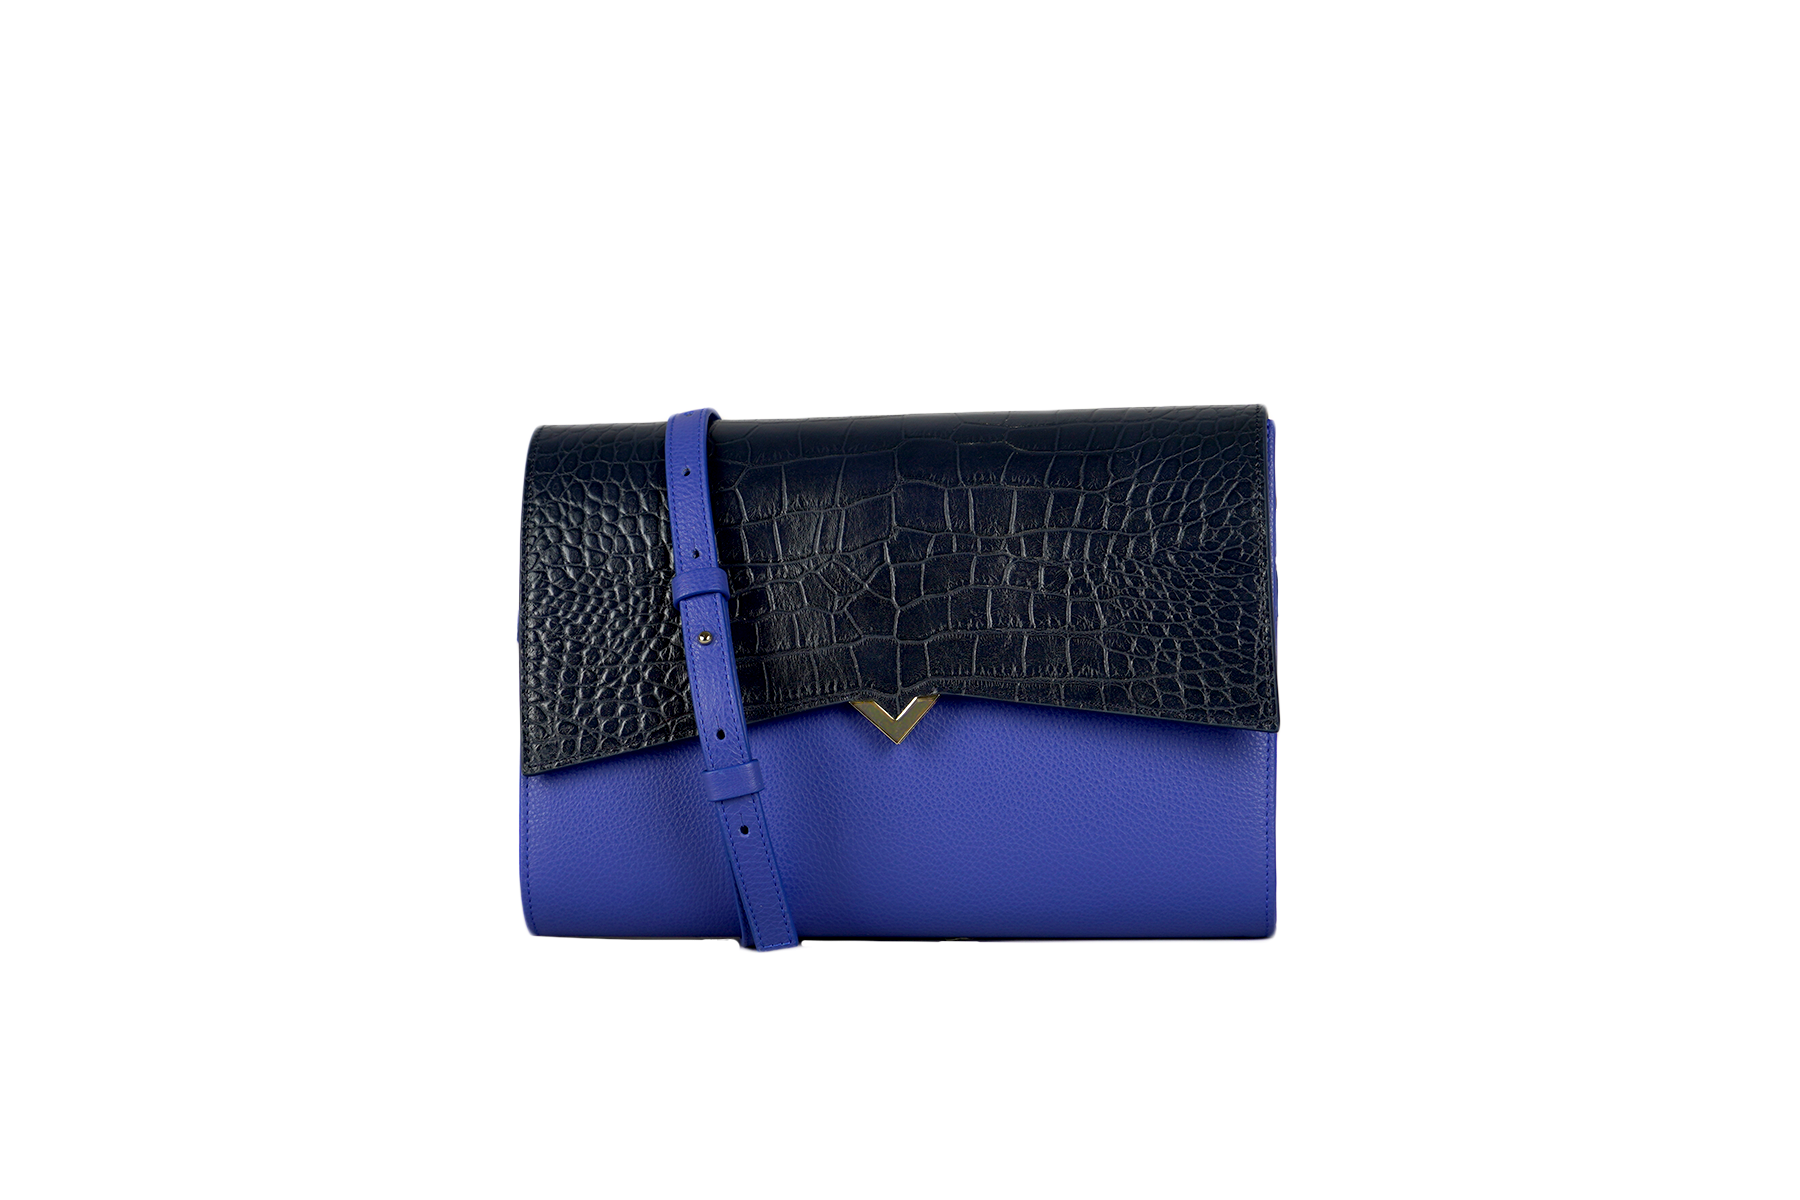 Roma Bag - Blue Leather & Navy Croco Cover